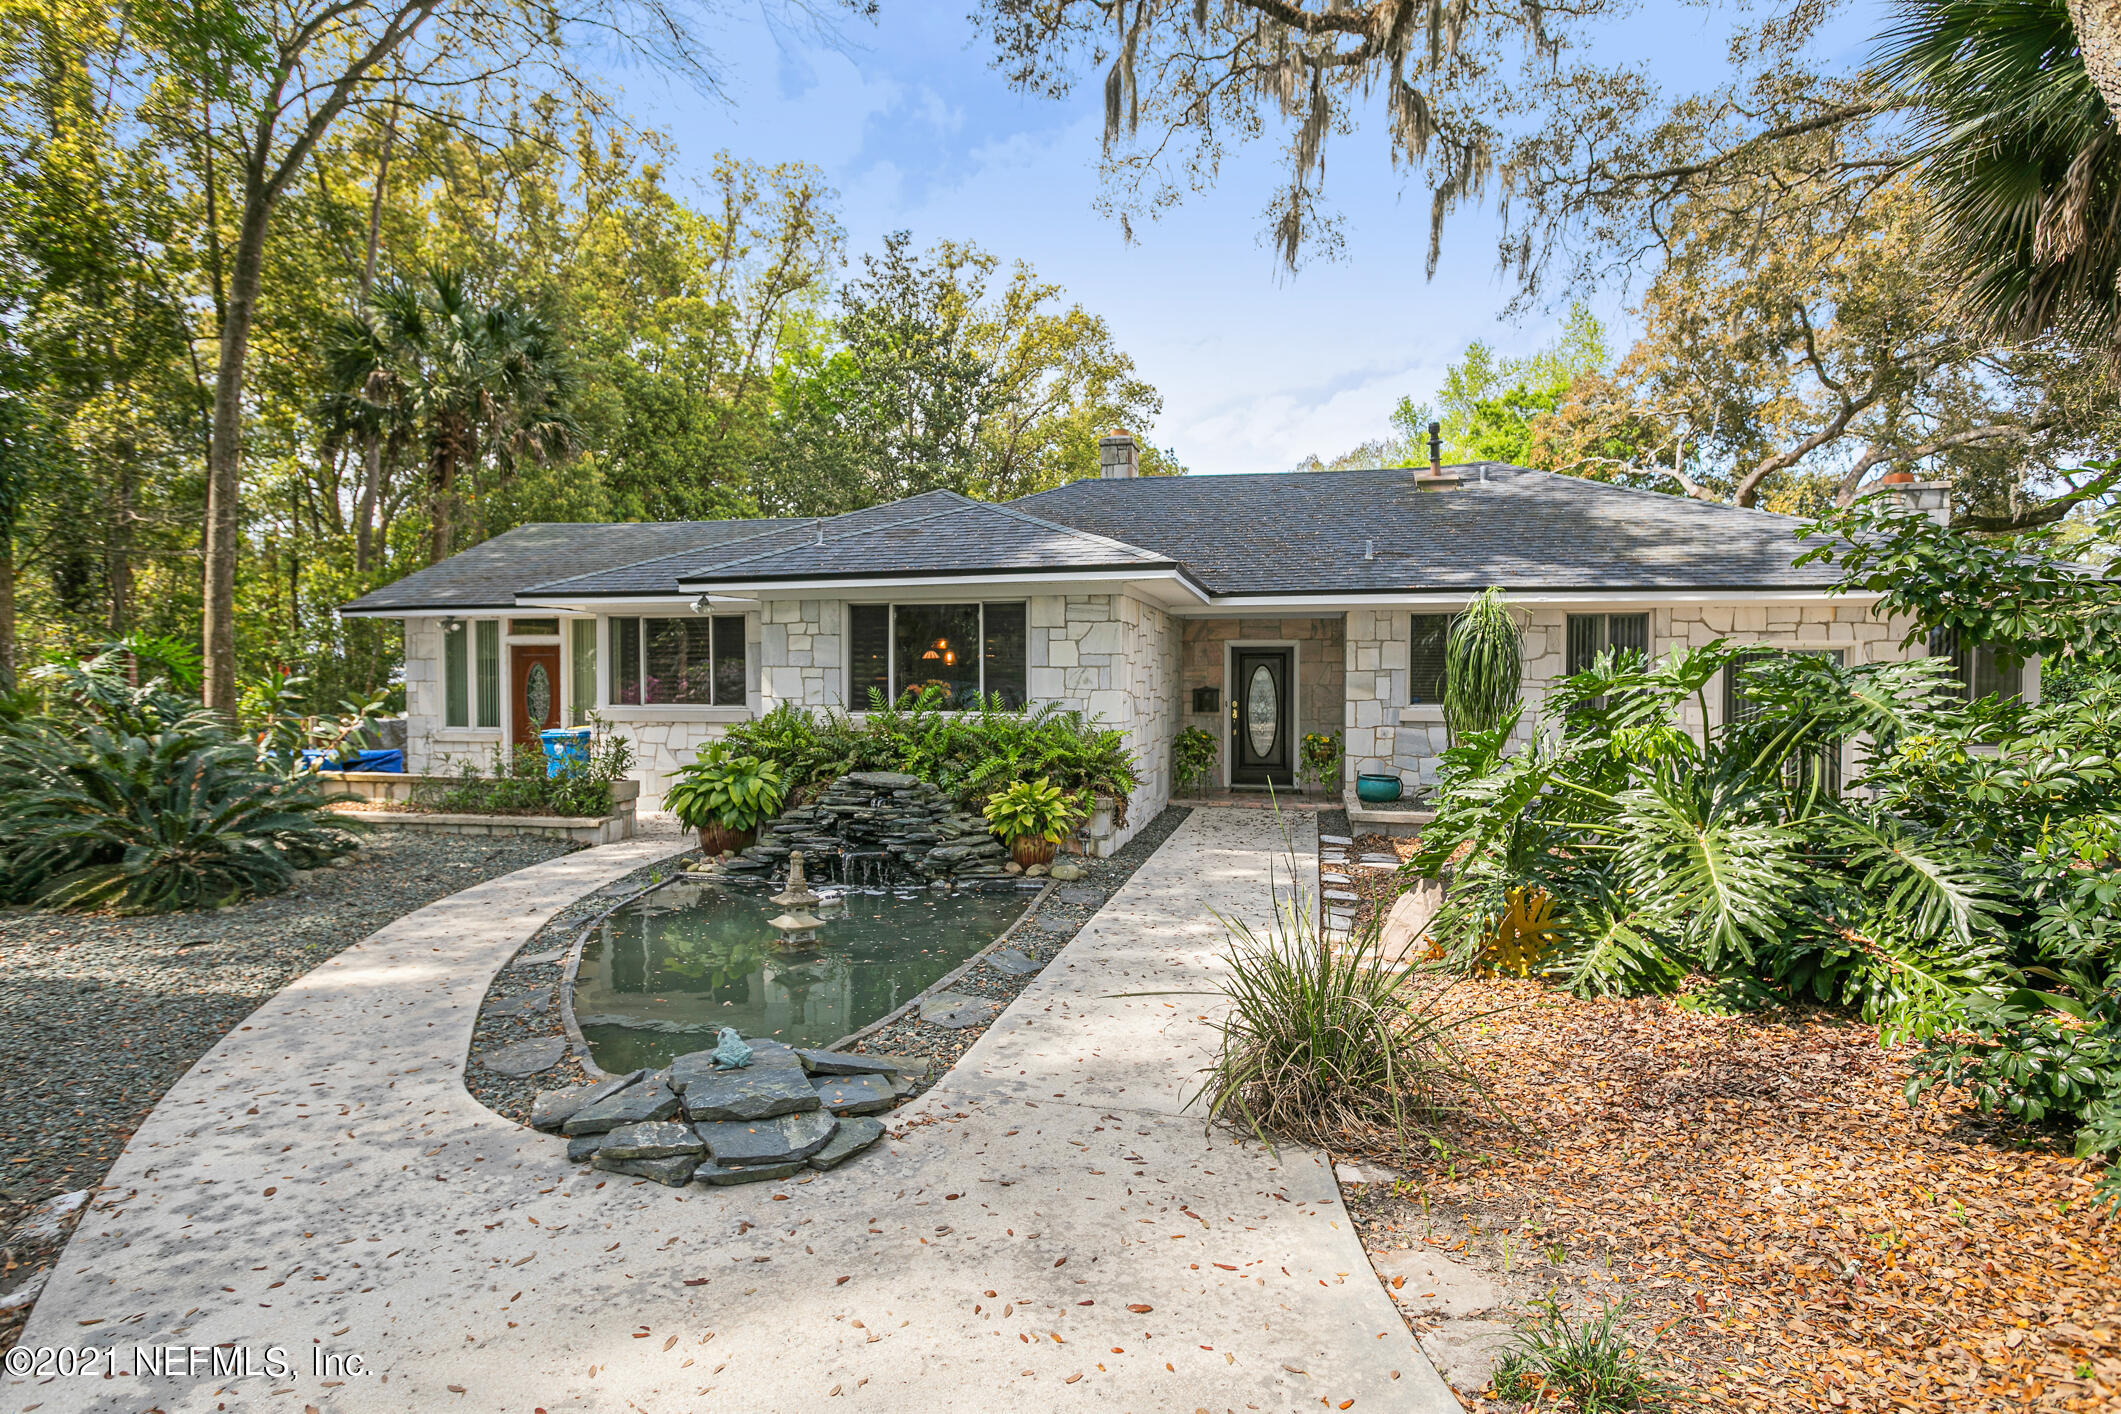 Charm personified in this hidden treasure. Tucked at the end of a non-assuming street you will find this hidden Gem. The gorgeous and lush landscape surrounds the home all the way to the river. Newer built pool and dock is like living in paradise and being on vacation every day. The central location is convenient and close to all Jacksonville has to offer. The open floor plan and spacious rooms offer natural sunlight as every room is filled with windows and doors leading to the wonderful outside.Fabulous kitchen offers gas cooktop, Subzero refrigerator & freezer, beautiful cabinetry and much more. 3rd bedroom now used as office space. Detached garage includes laundry room & bath along with upstairs apartment with efficiency kitchen & bath. Bulkheaded, refurbished dock w/lift.